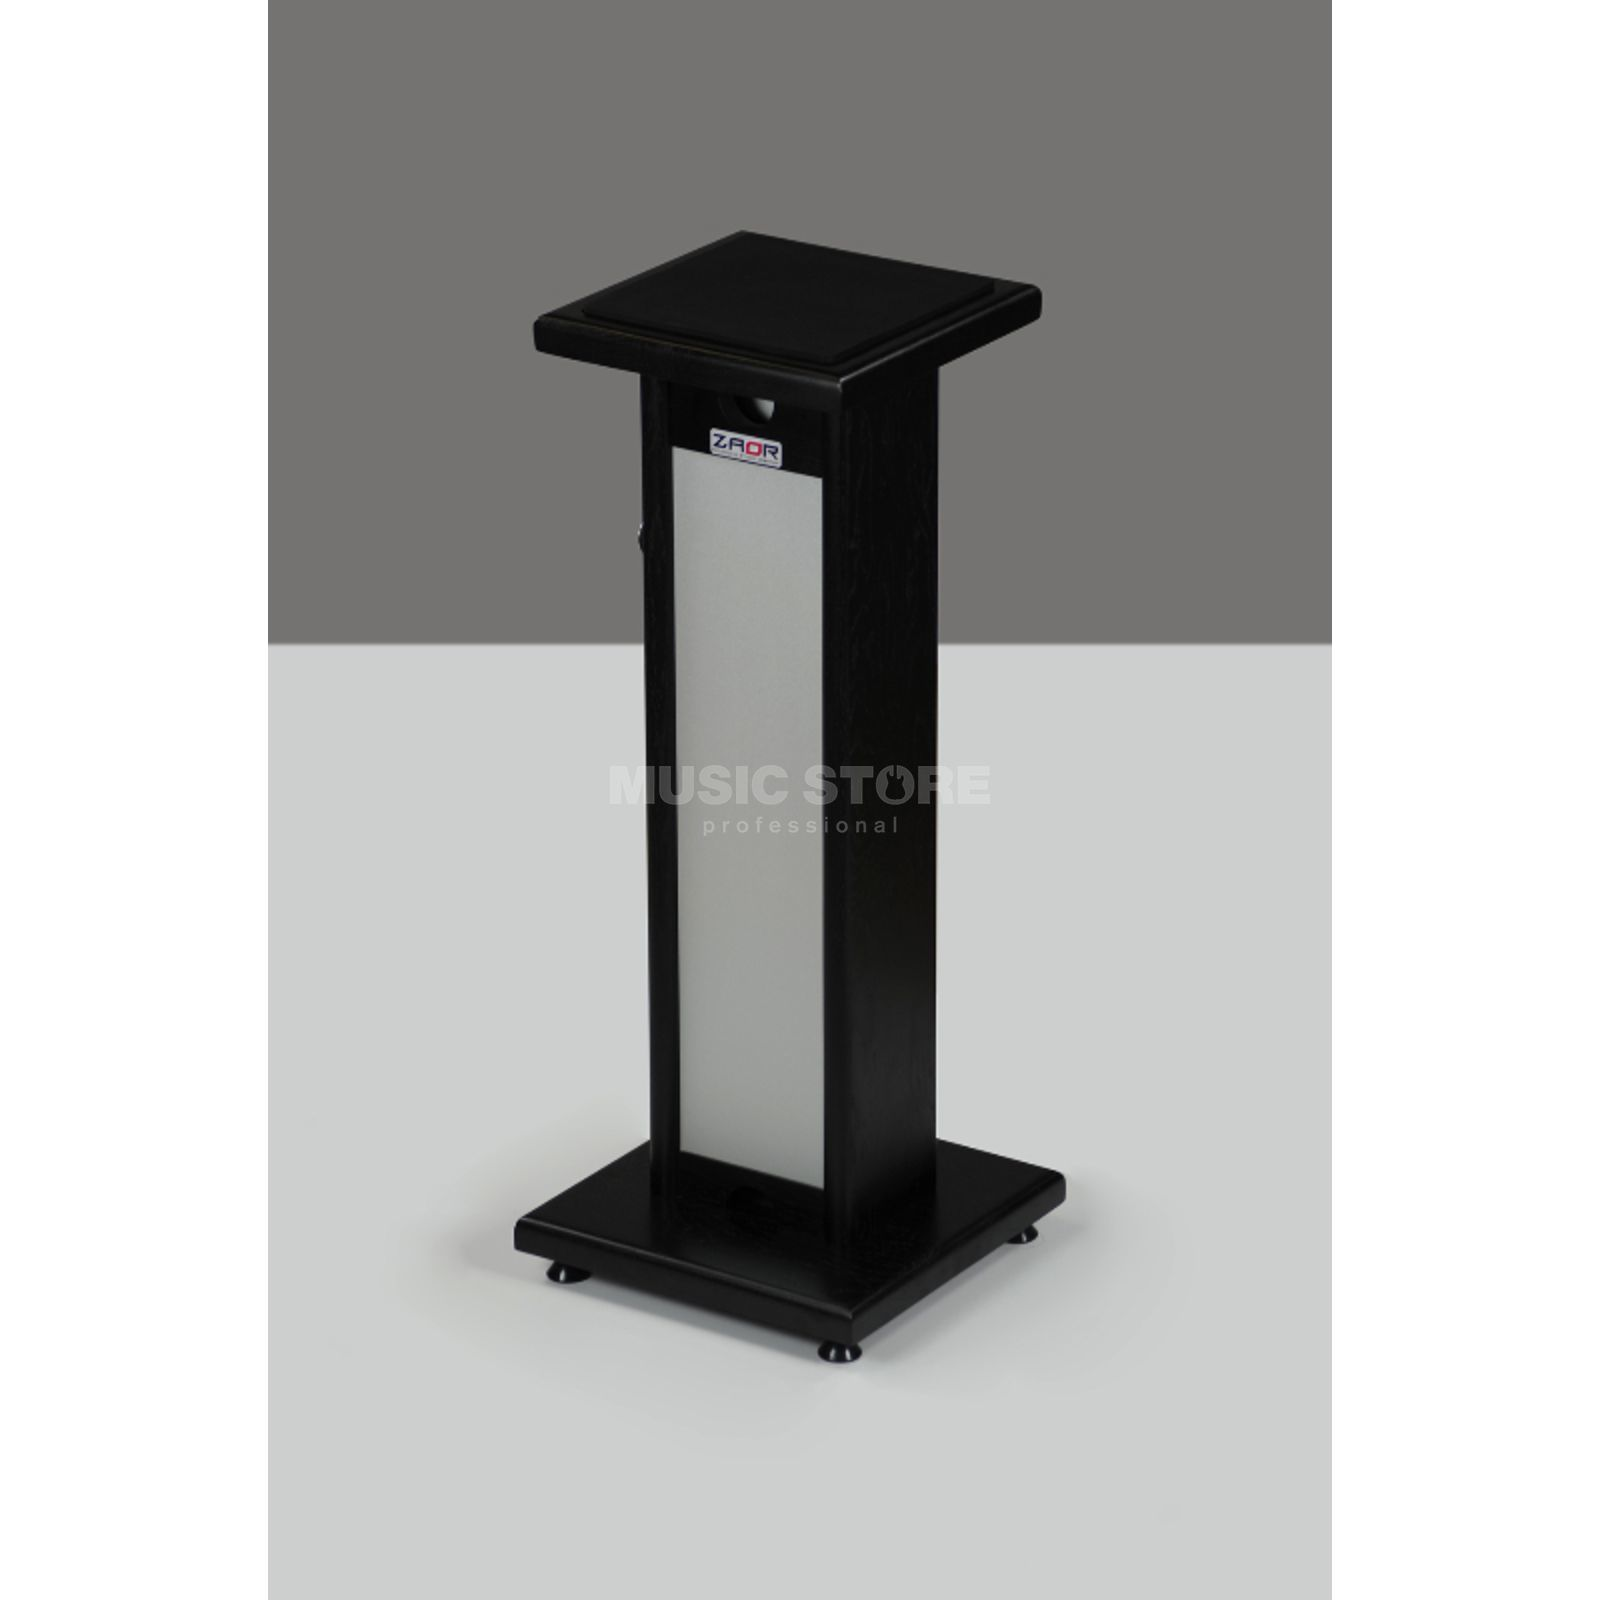 zaor stand monitor black pied pour enceinte noir. Black Bedroom Furniture Sets. Home Design Ideas